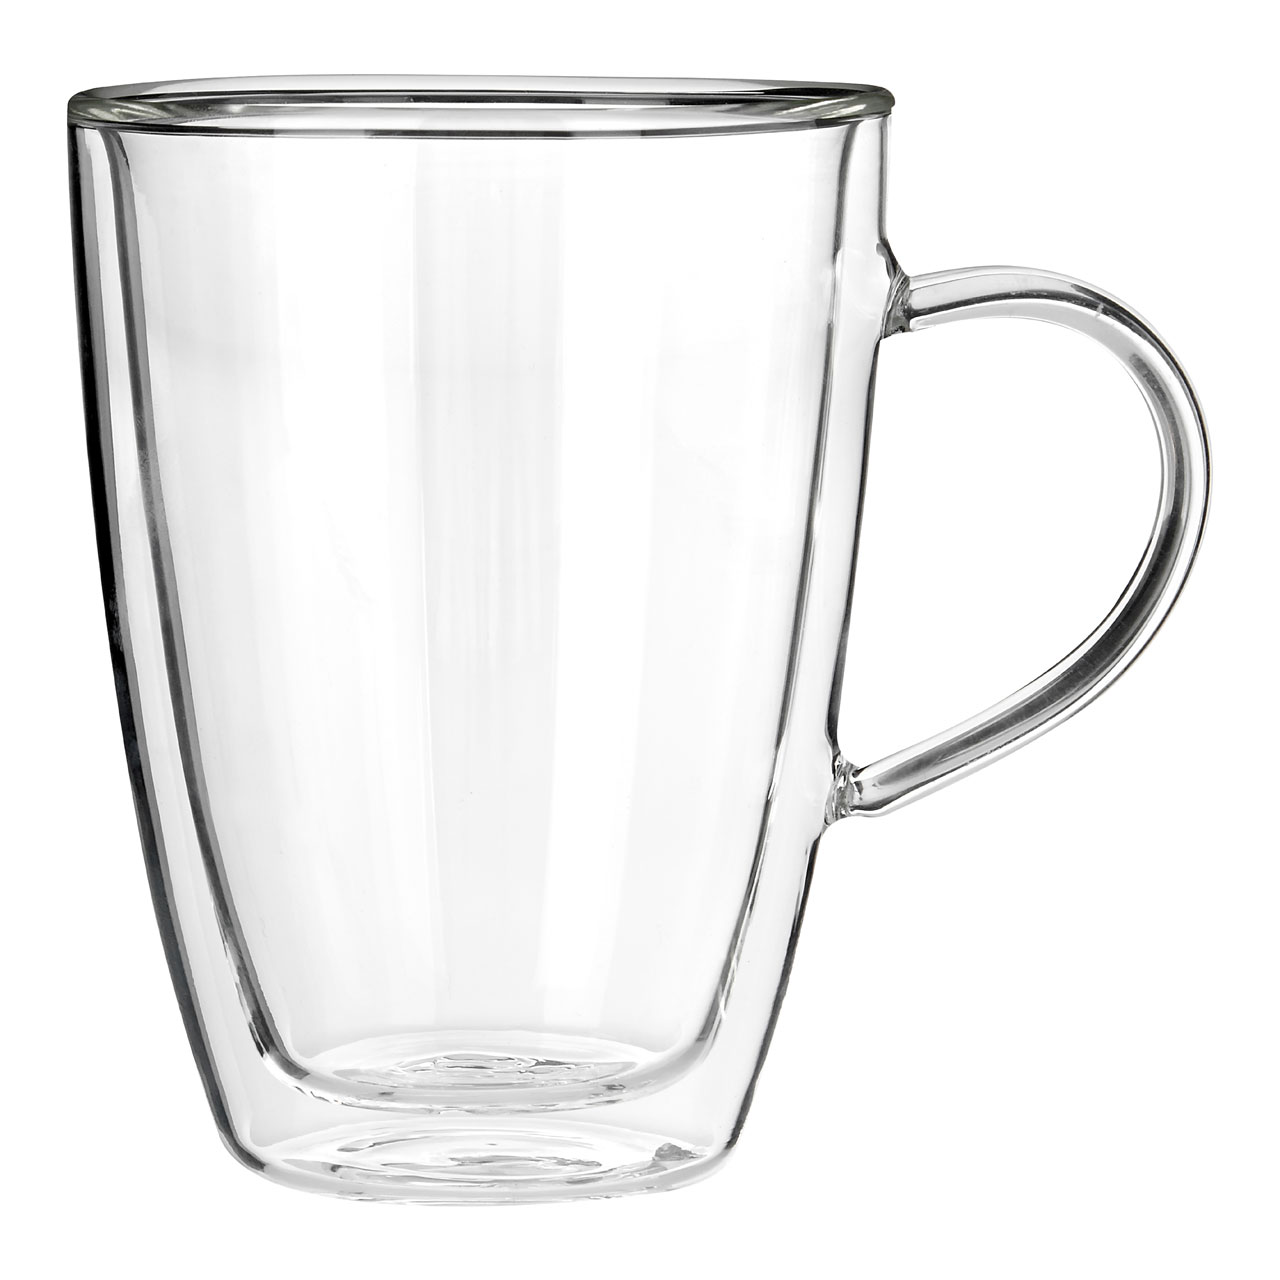 Details about Glass Coffee Mug 330ml Double Wall Tea Cup for Hot & Cold  Drinks